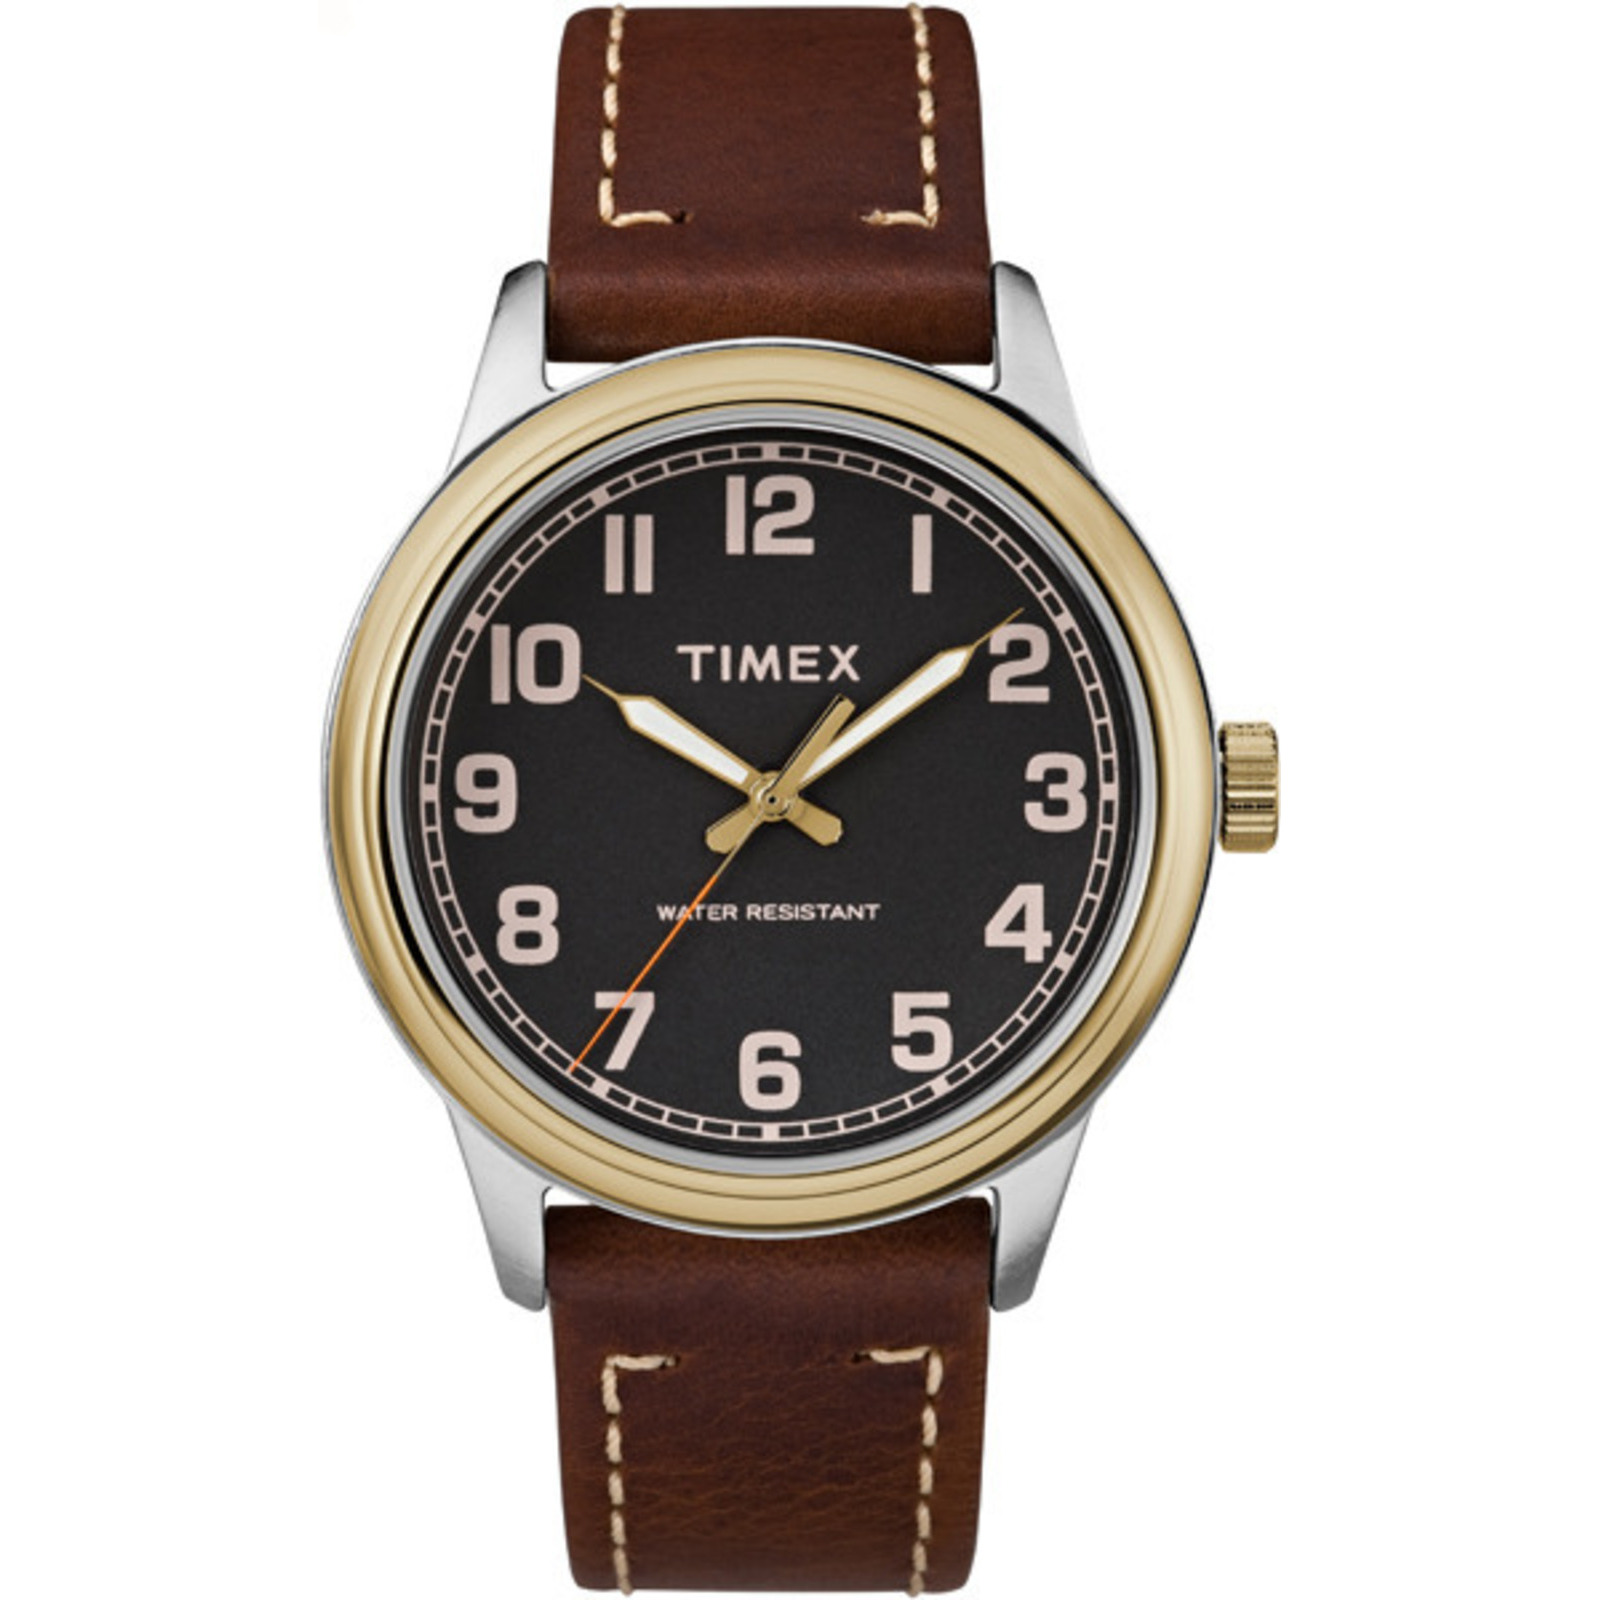 Timex Men's New England 40mm Leather Strap |Brown| Dress Watch TW2R22900